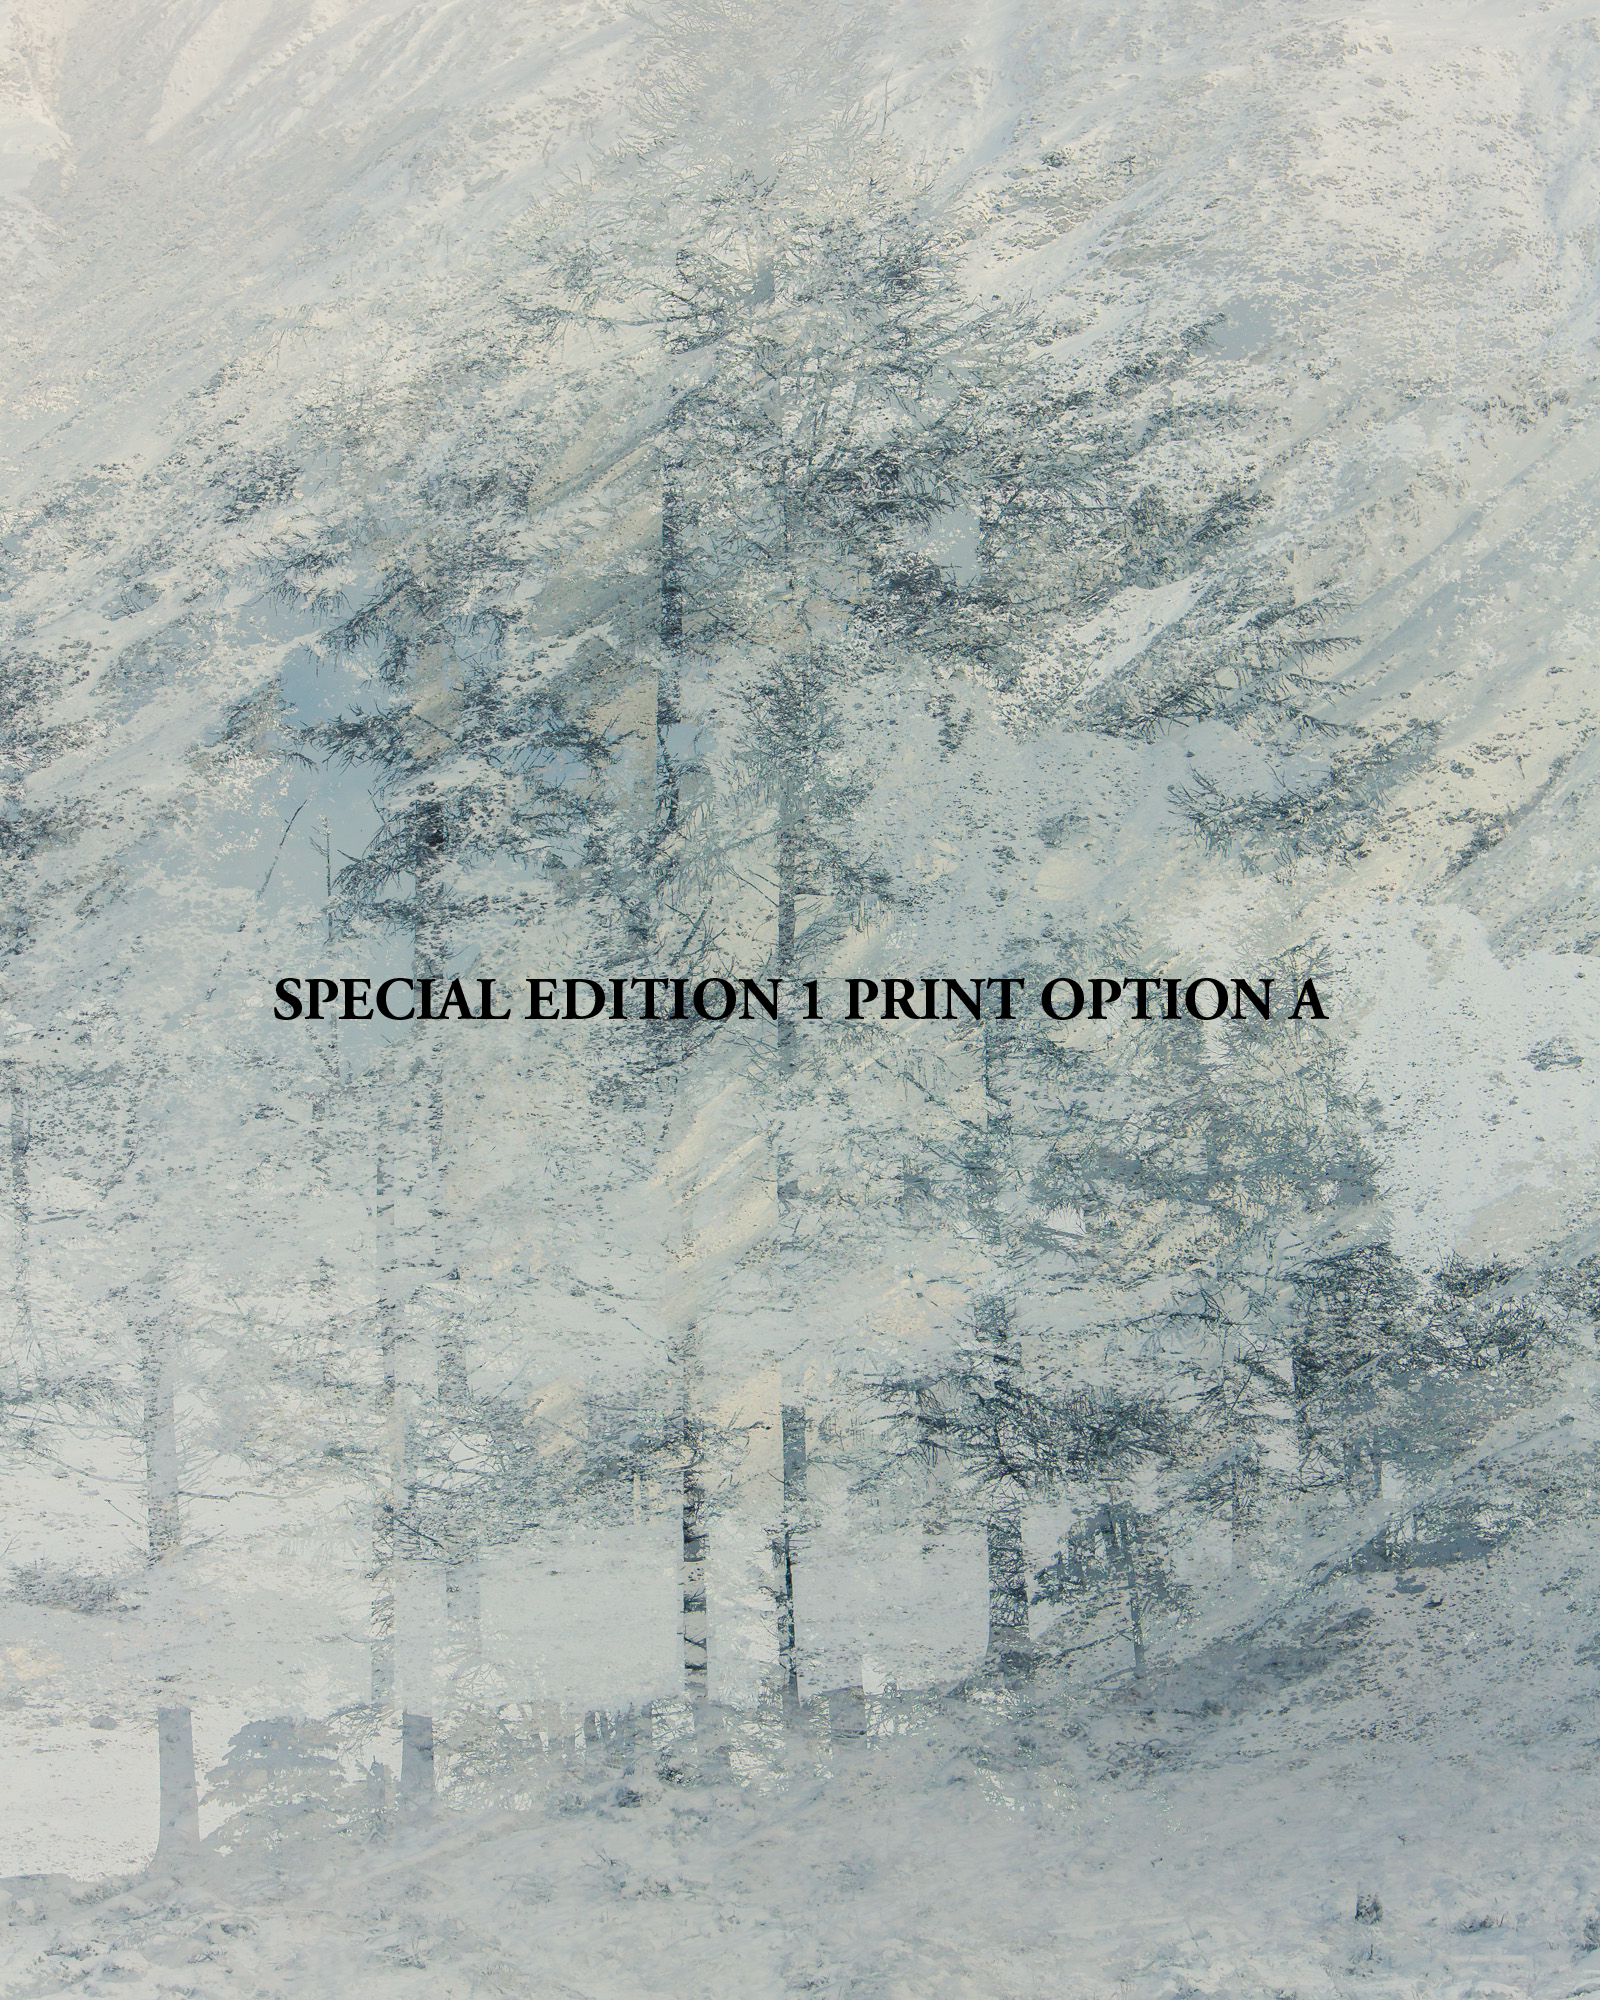 SPECIAL EDITION 1 PRINT A